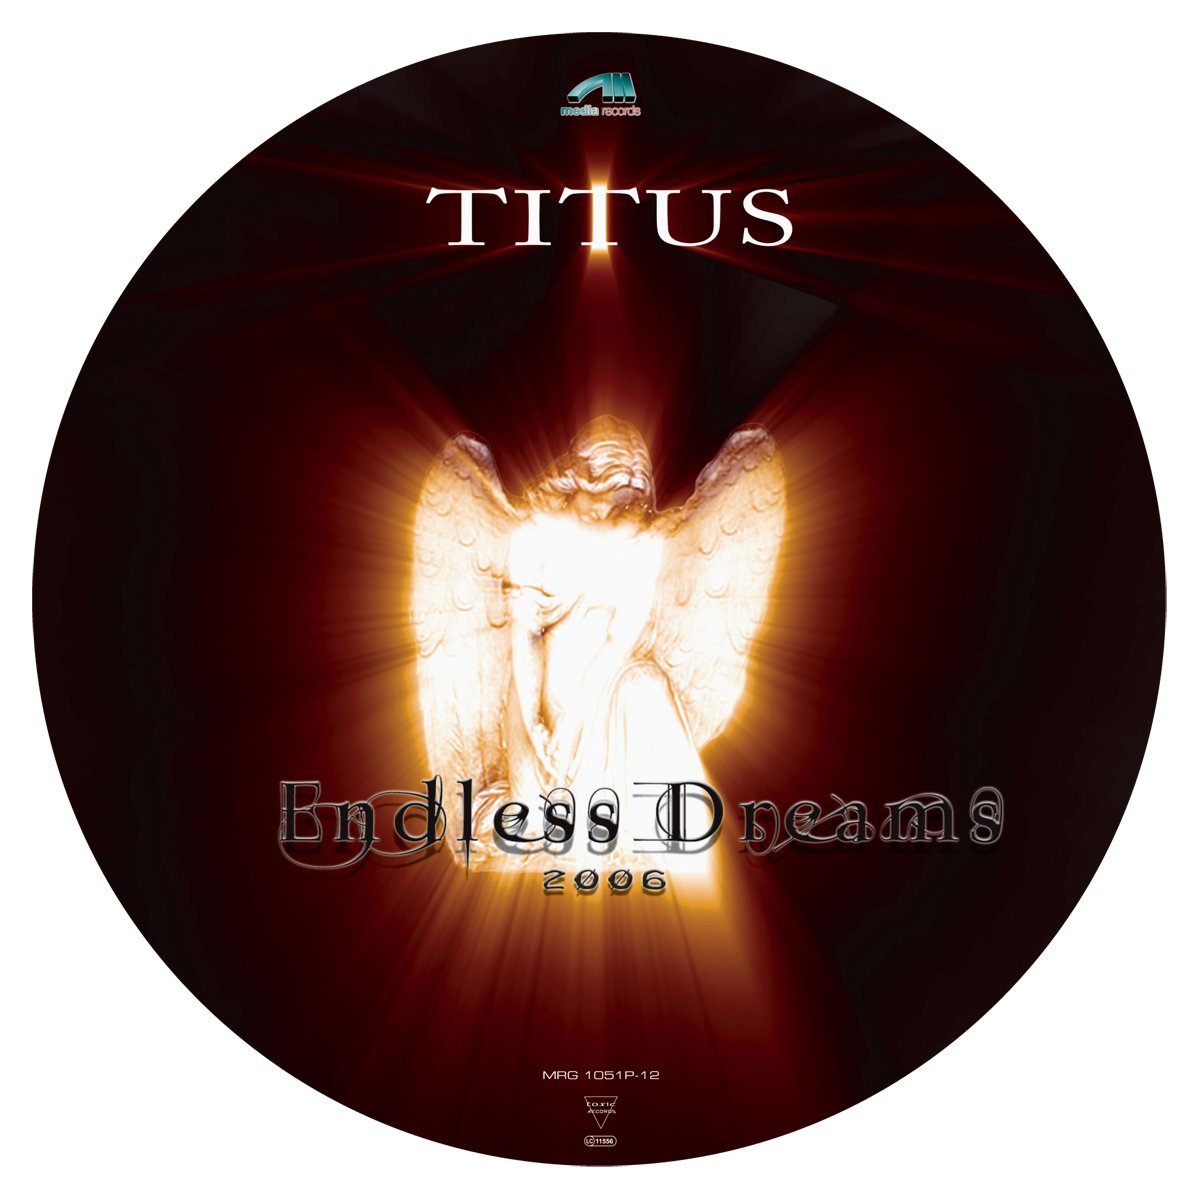 Titus. Endless Dreams 2006 (LP, Picture Disc)